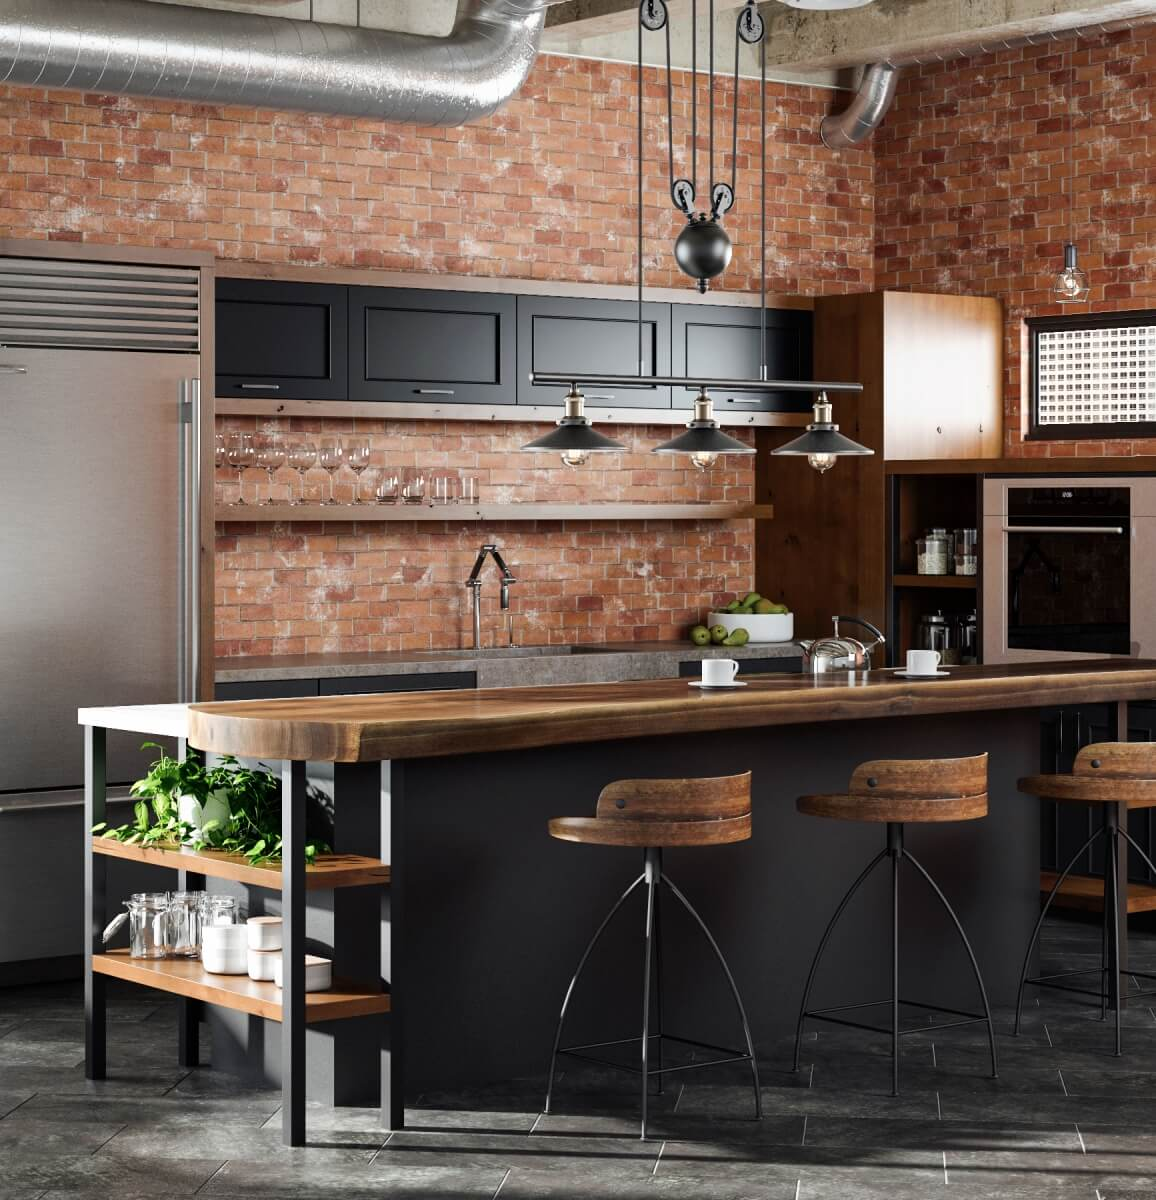 Industrial style kitchen design with one large light fixture with 3 lights over the kitchen island.